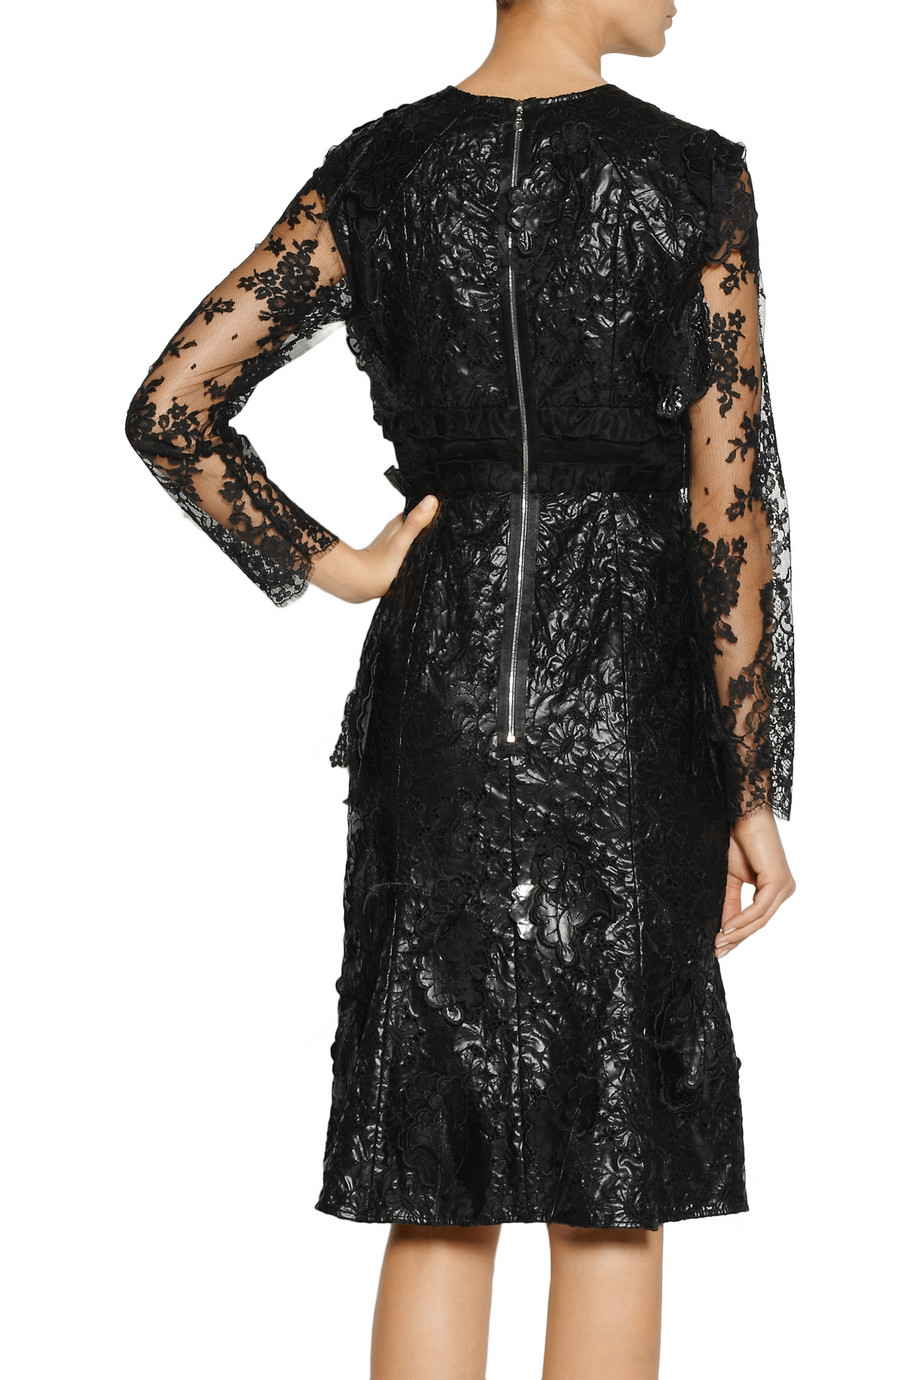 Erdem Bobin Embellished Faux Leather And Lace Dress In